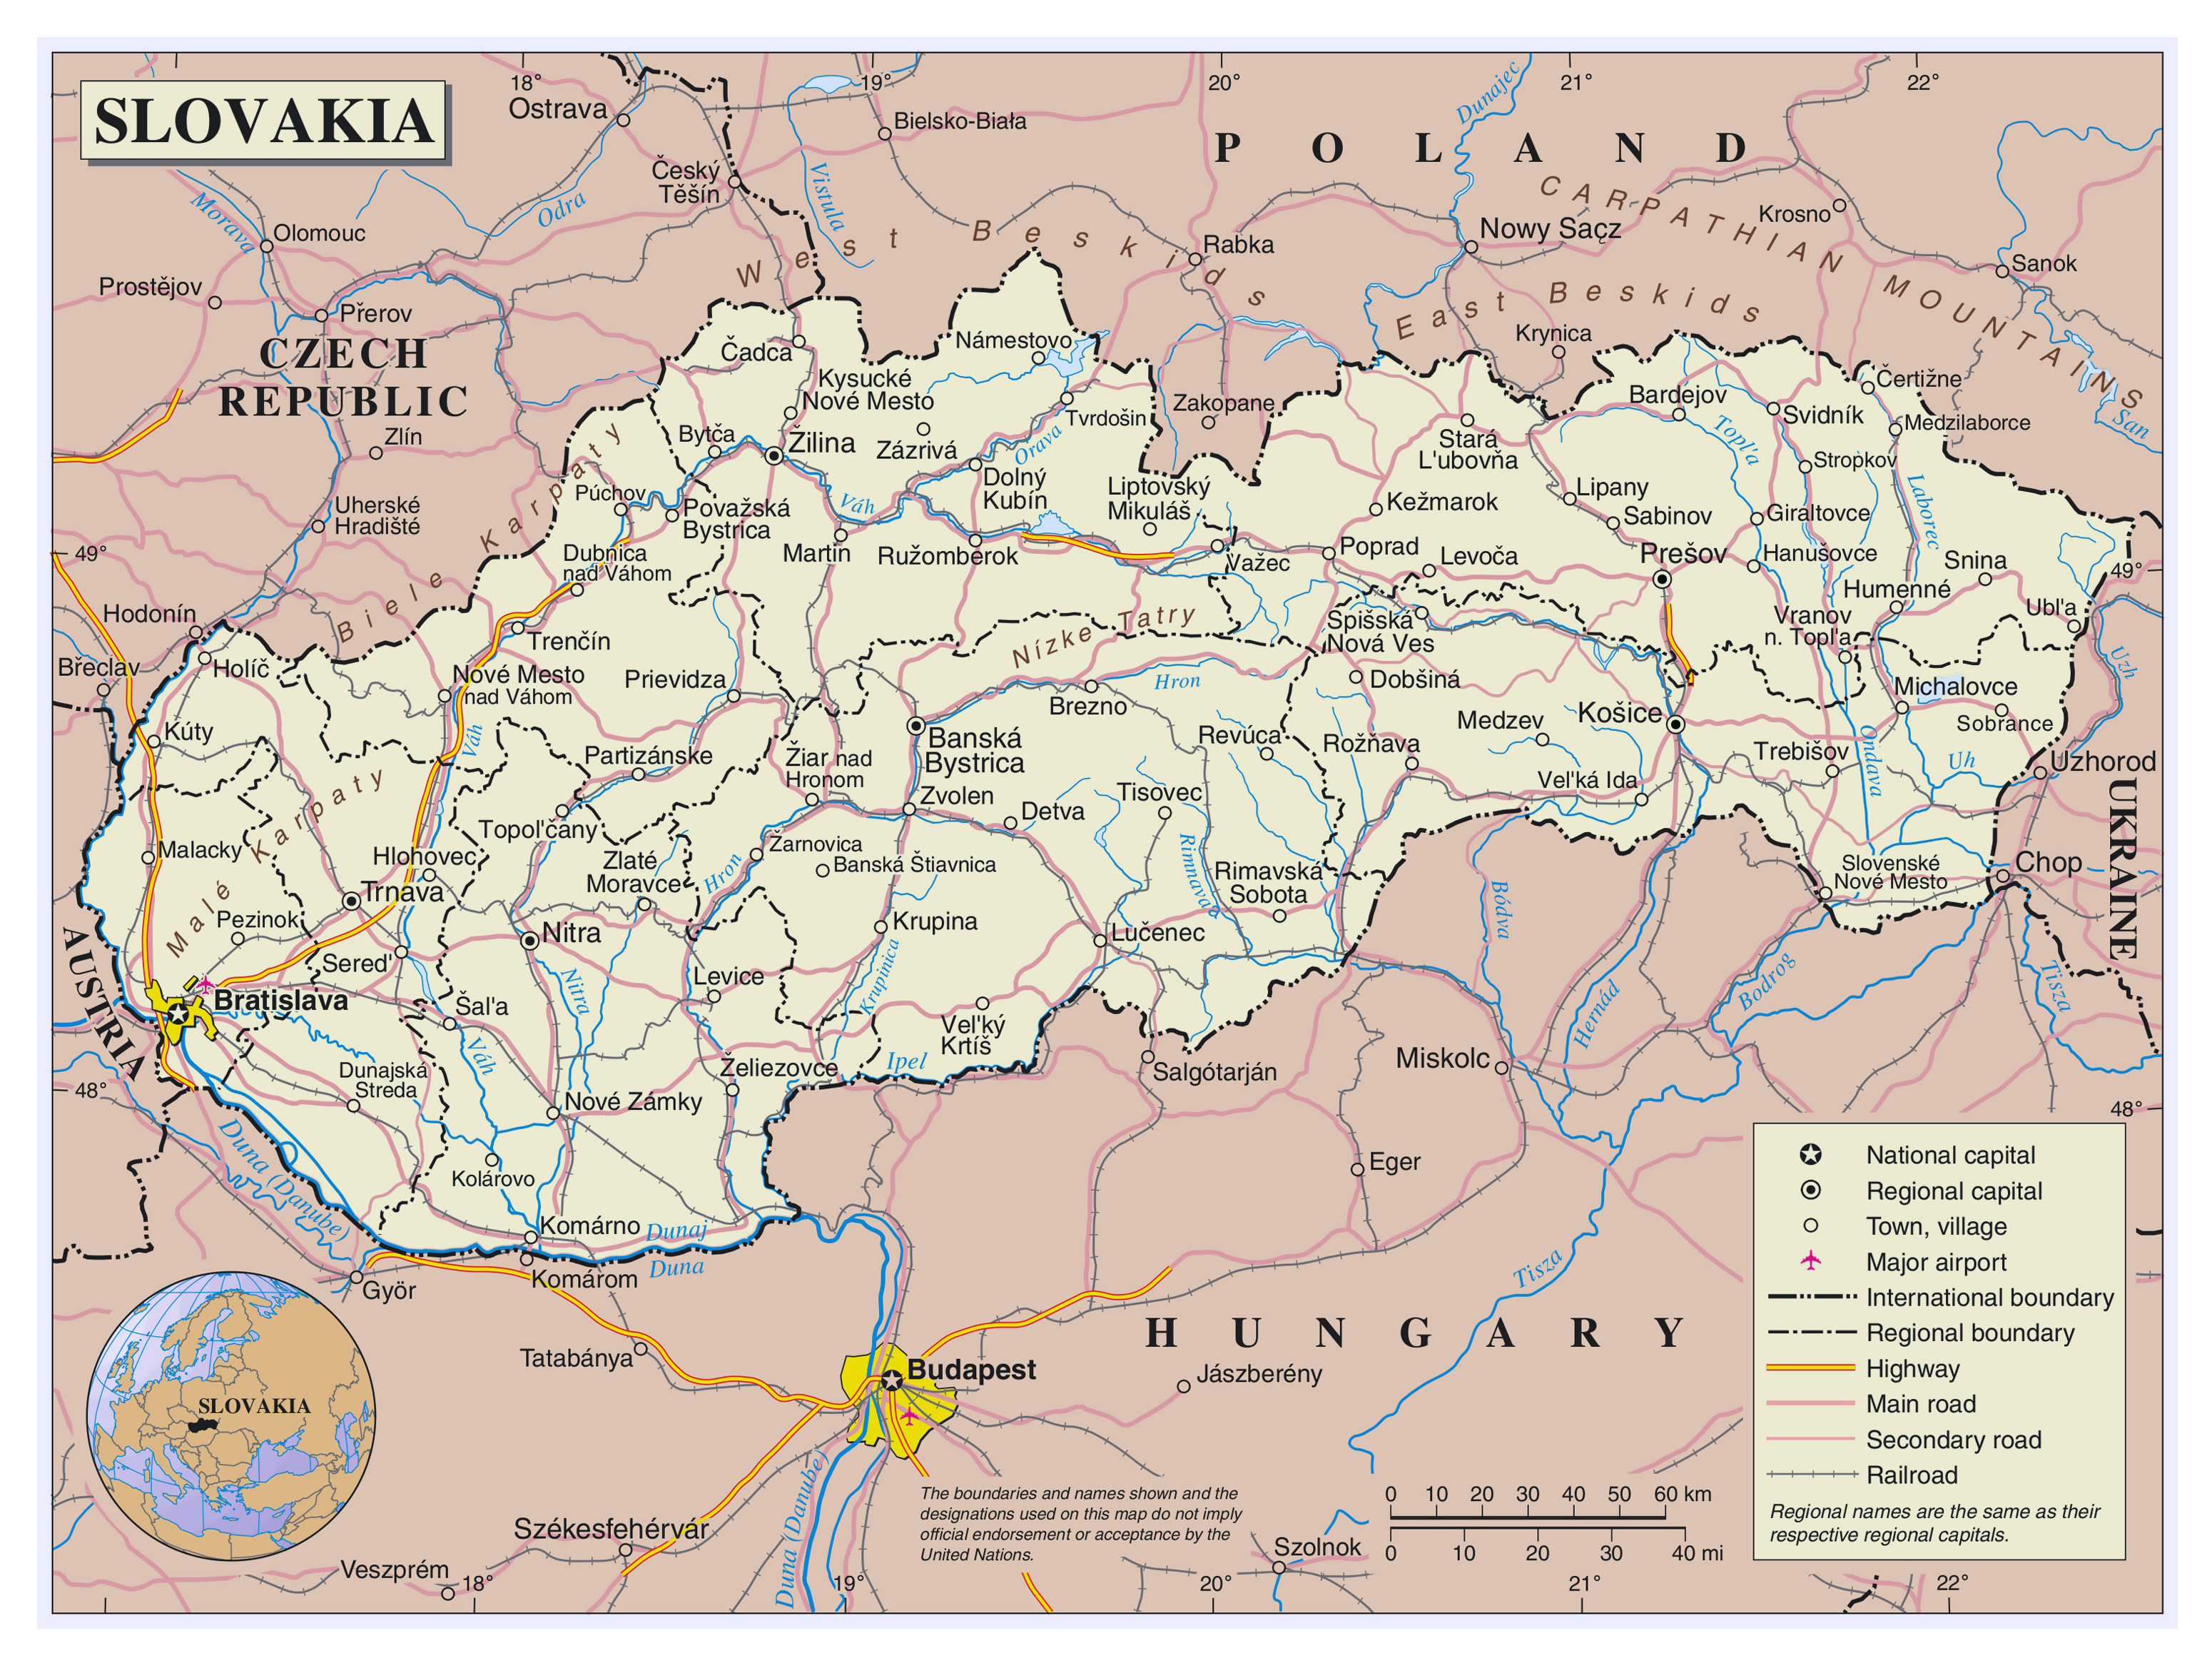 Large Detailed Political And Administrative Map Of Slovakia With